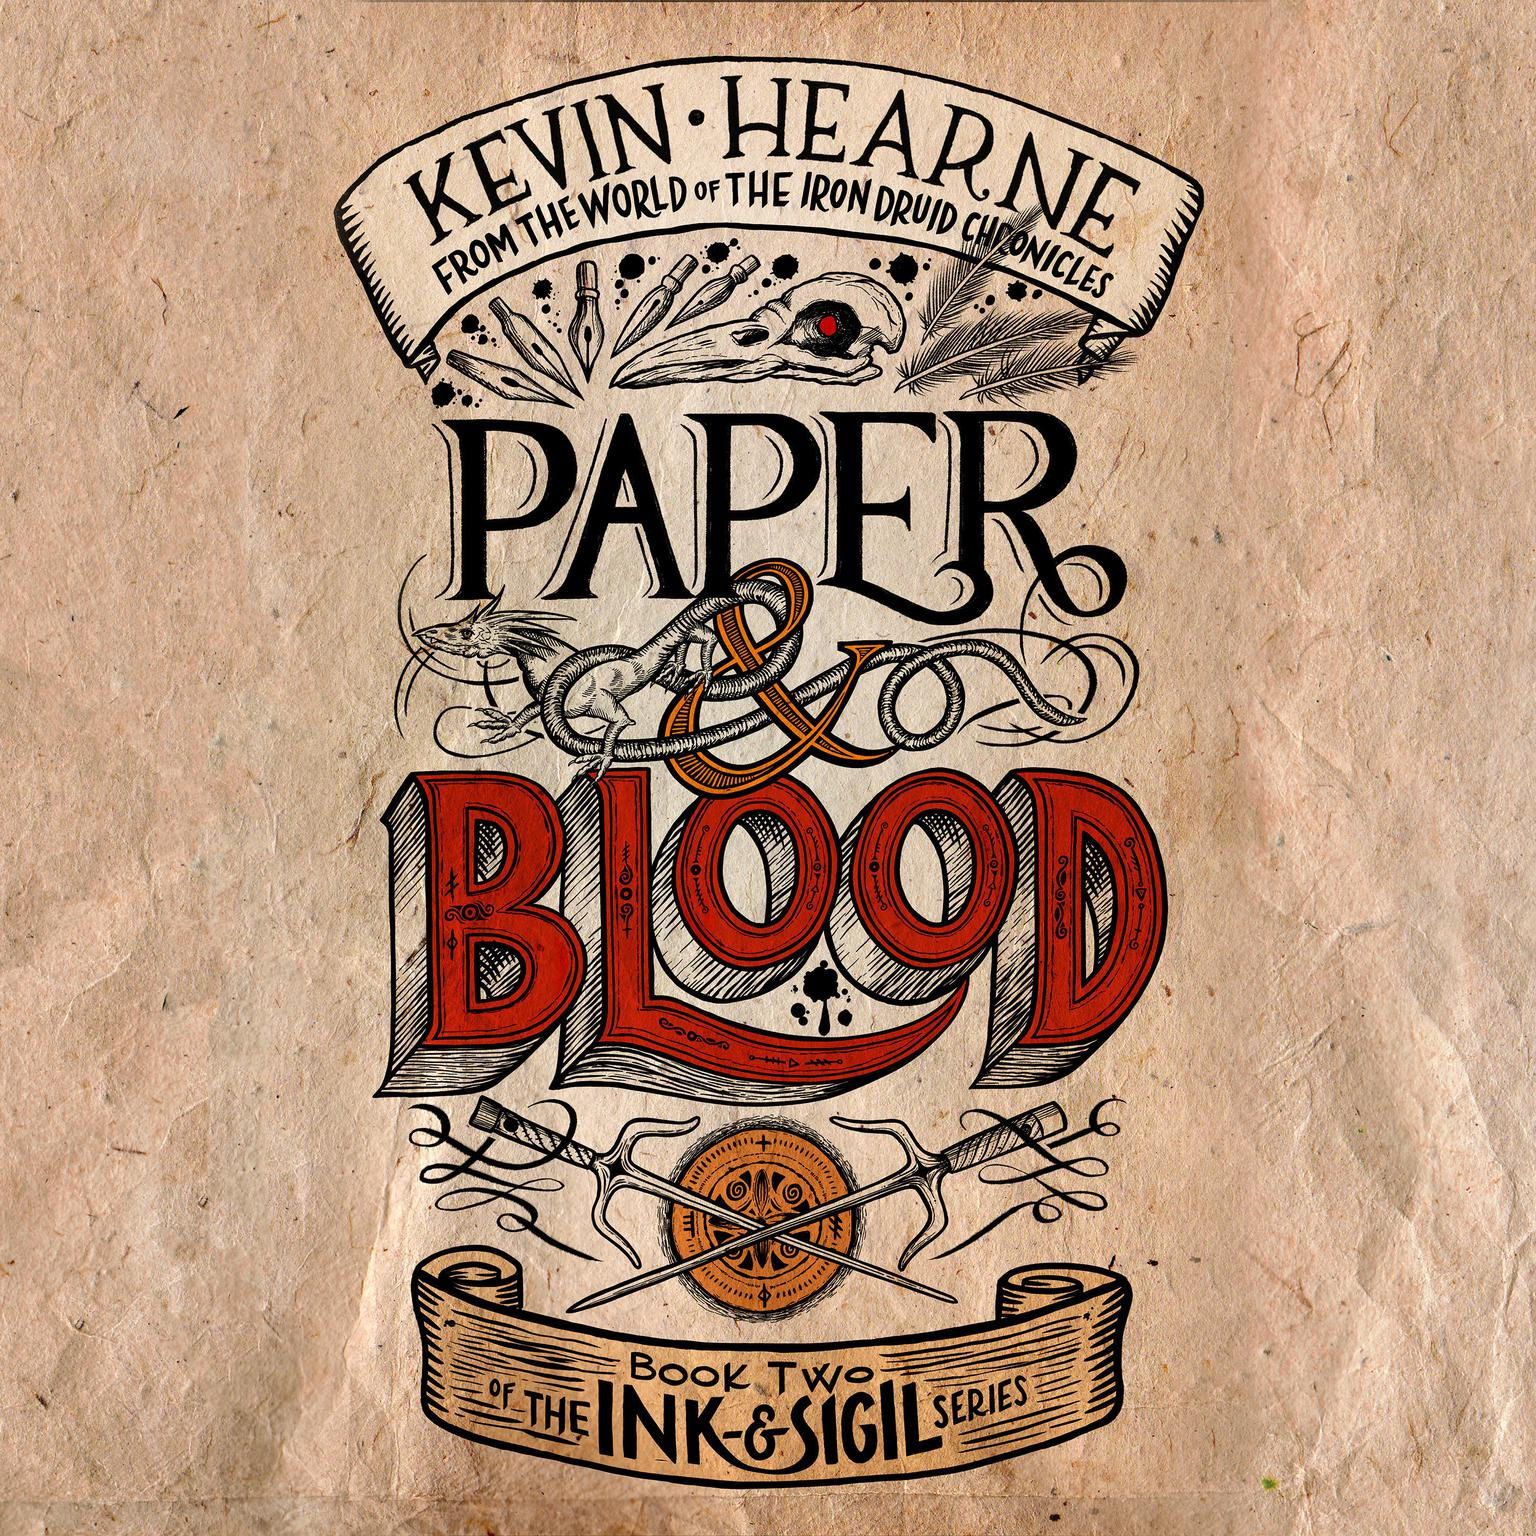 Paper & Blood: Book Two of the Ink & Sigil series Audiobook, by Kevin Hearne